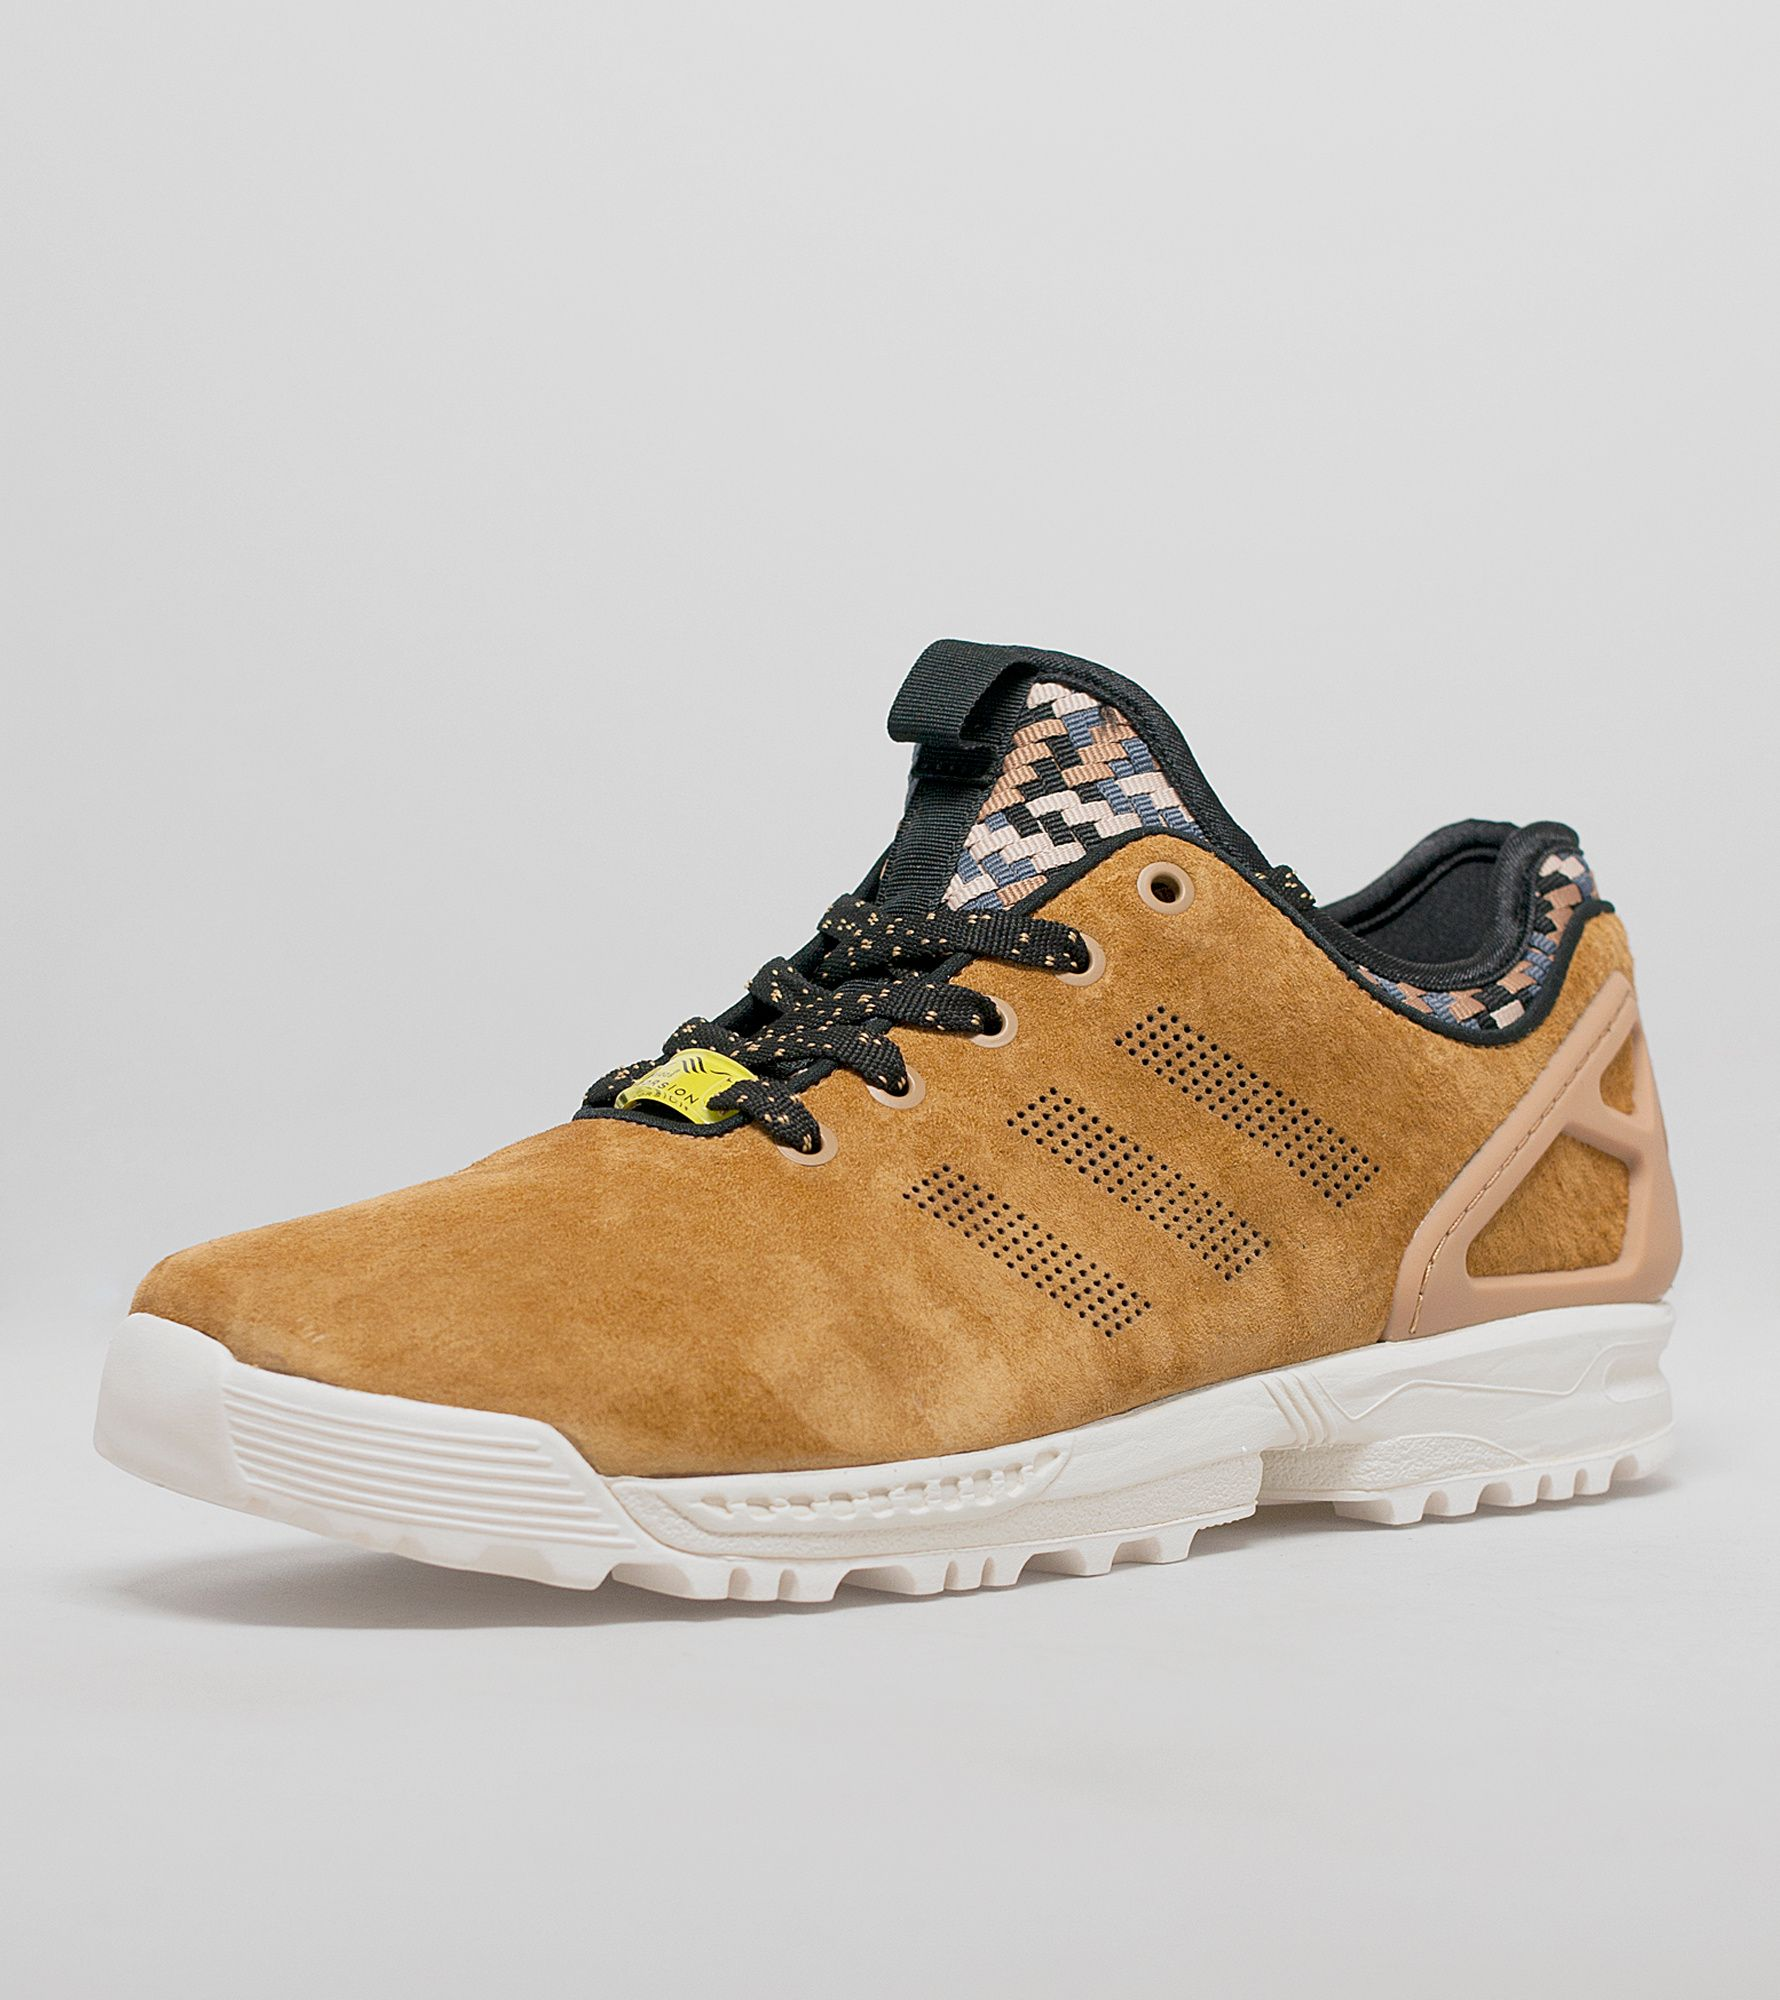 4b7445ad0a1b ... black fitness jogging shoes for women sale 599ae 42d59  inexpensive  adidas originals zx flux winter nps weave size exclusive 5e9b2 fa048